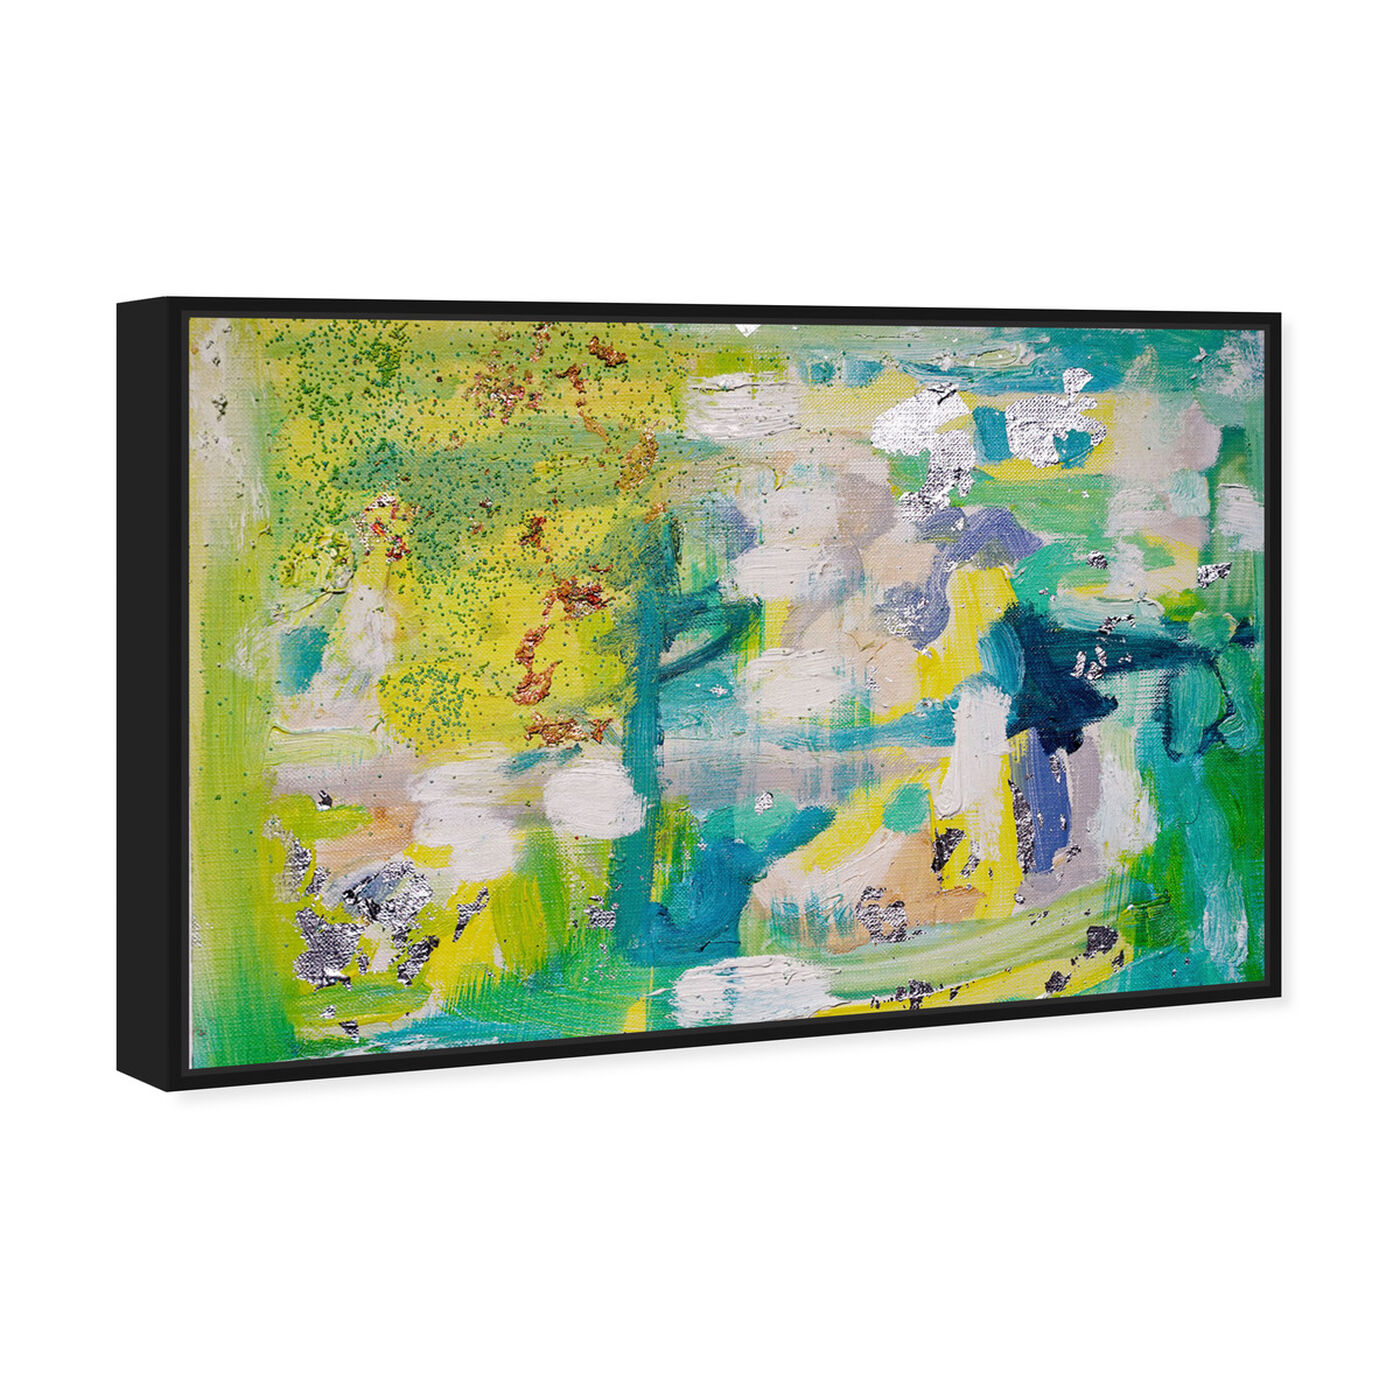 Angled view of Fresh Awakening by Tiffany Pratt featuring abstract and paint art.